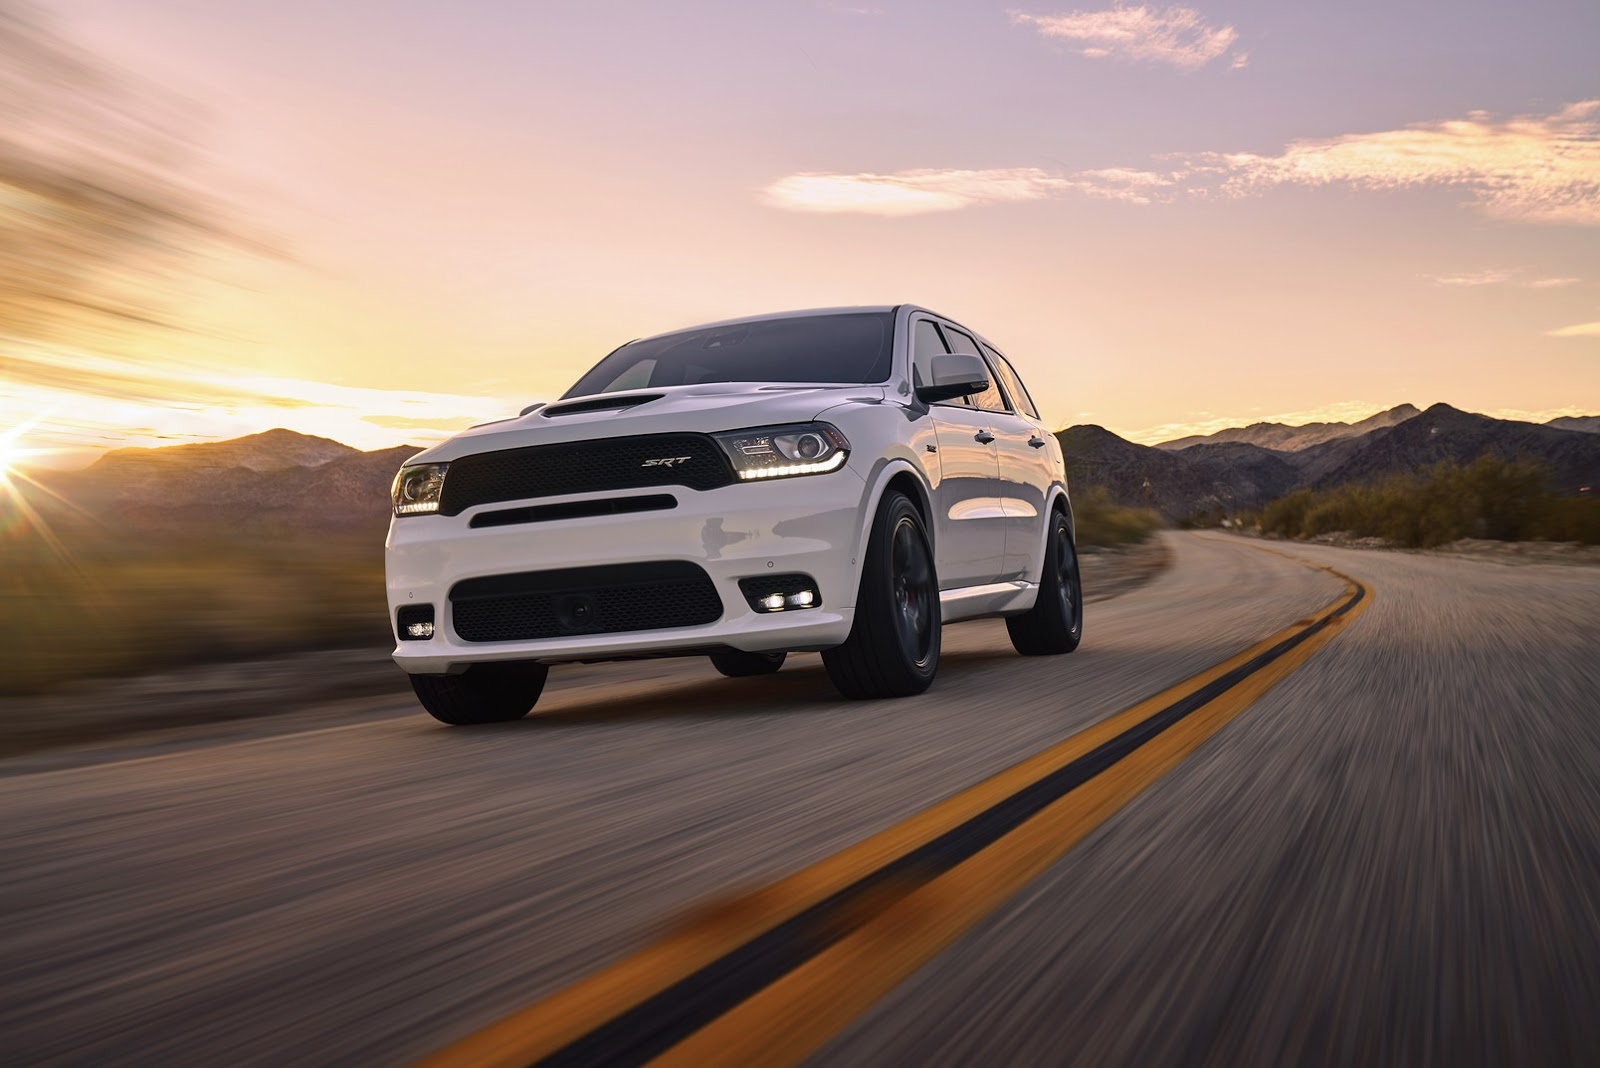 2018 dodge durango srt is america s quickest three row suv autoevolution. Black Bedroom Furniture Sets. Home Design Ideas